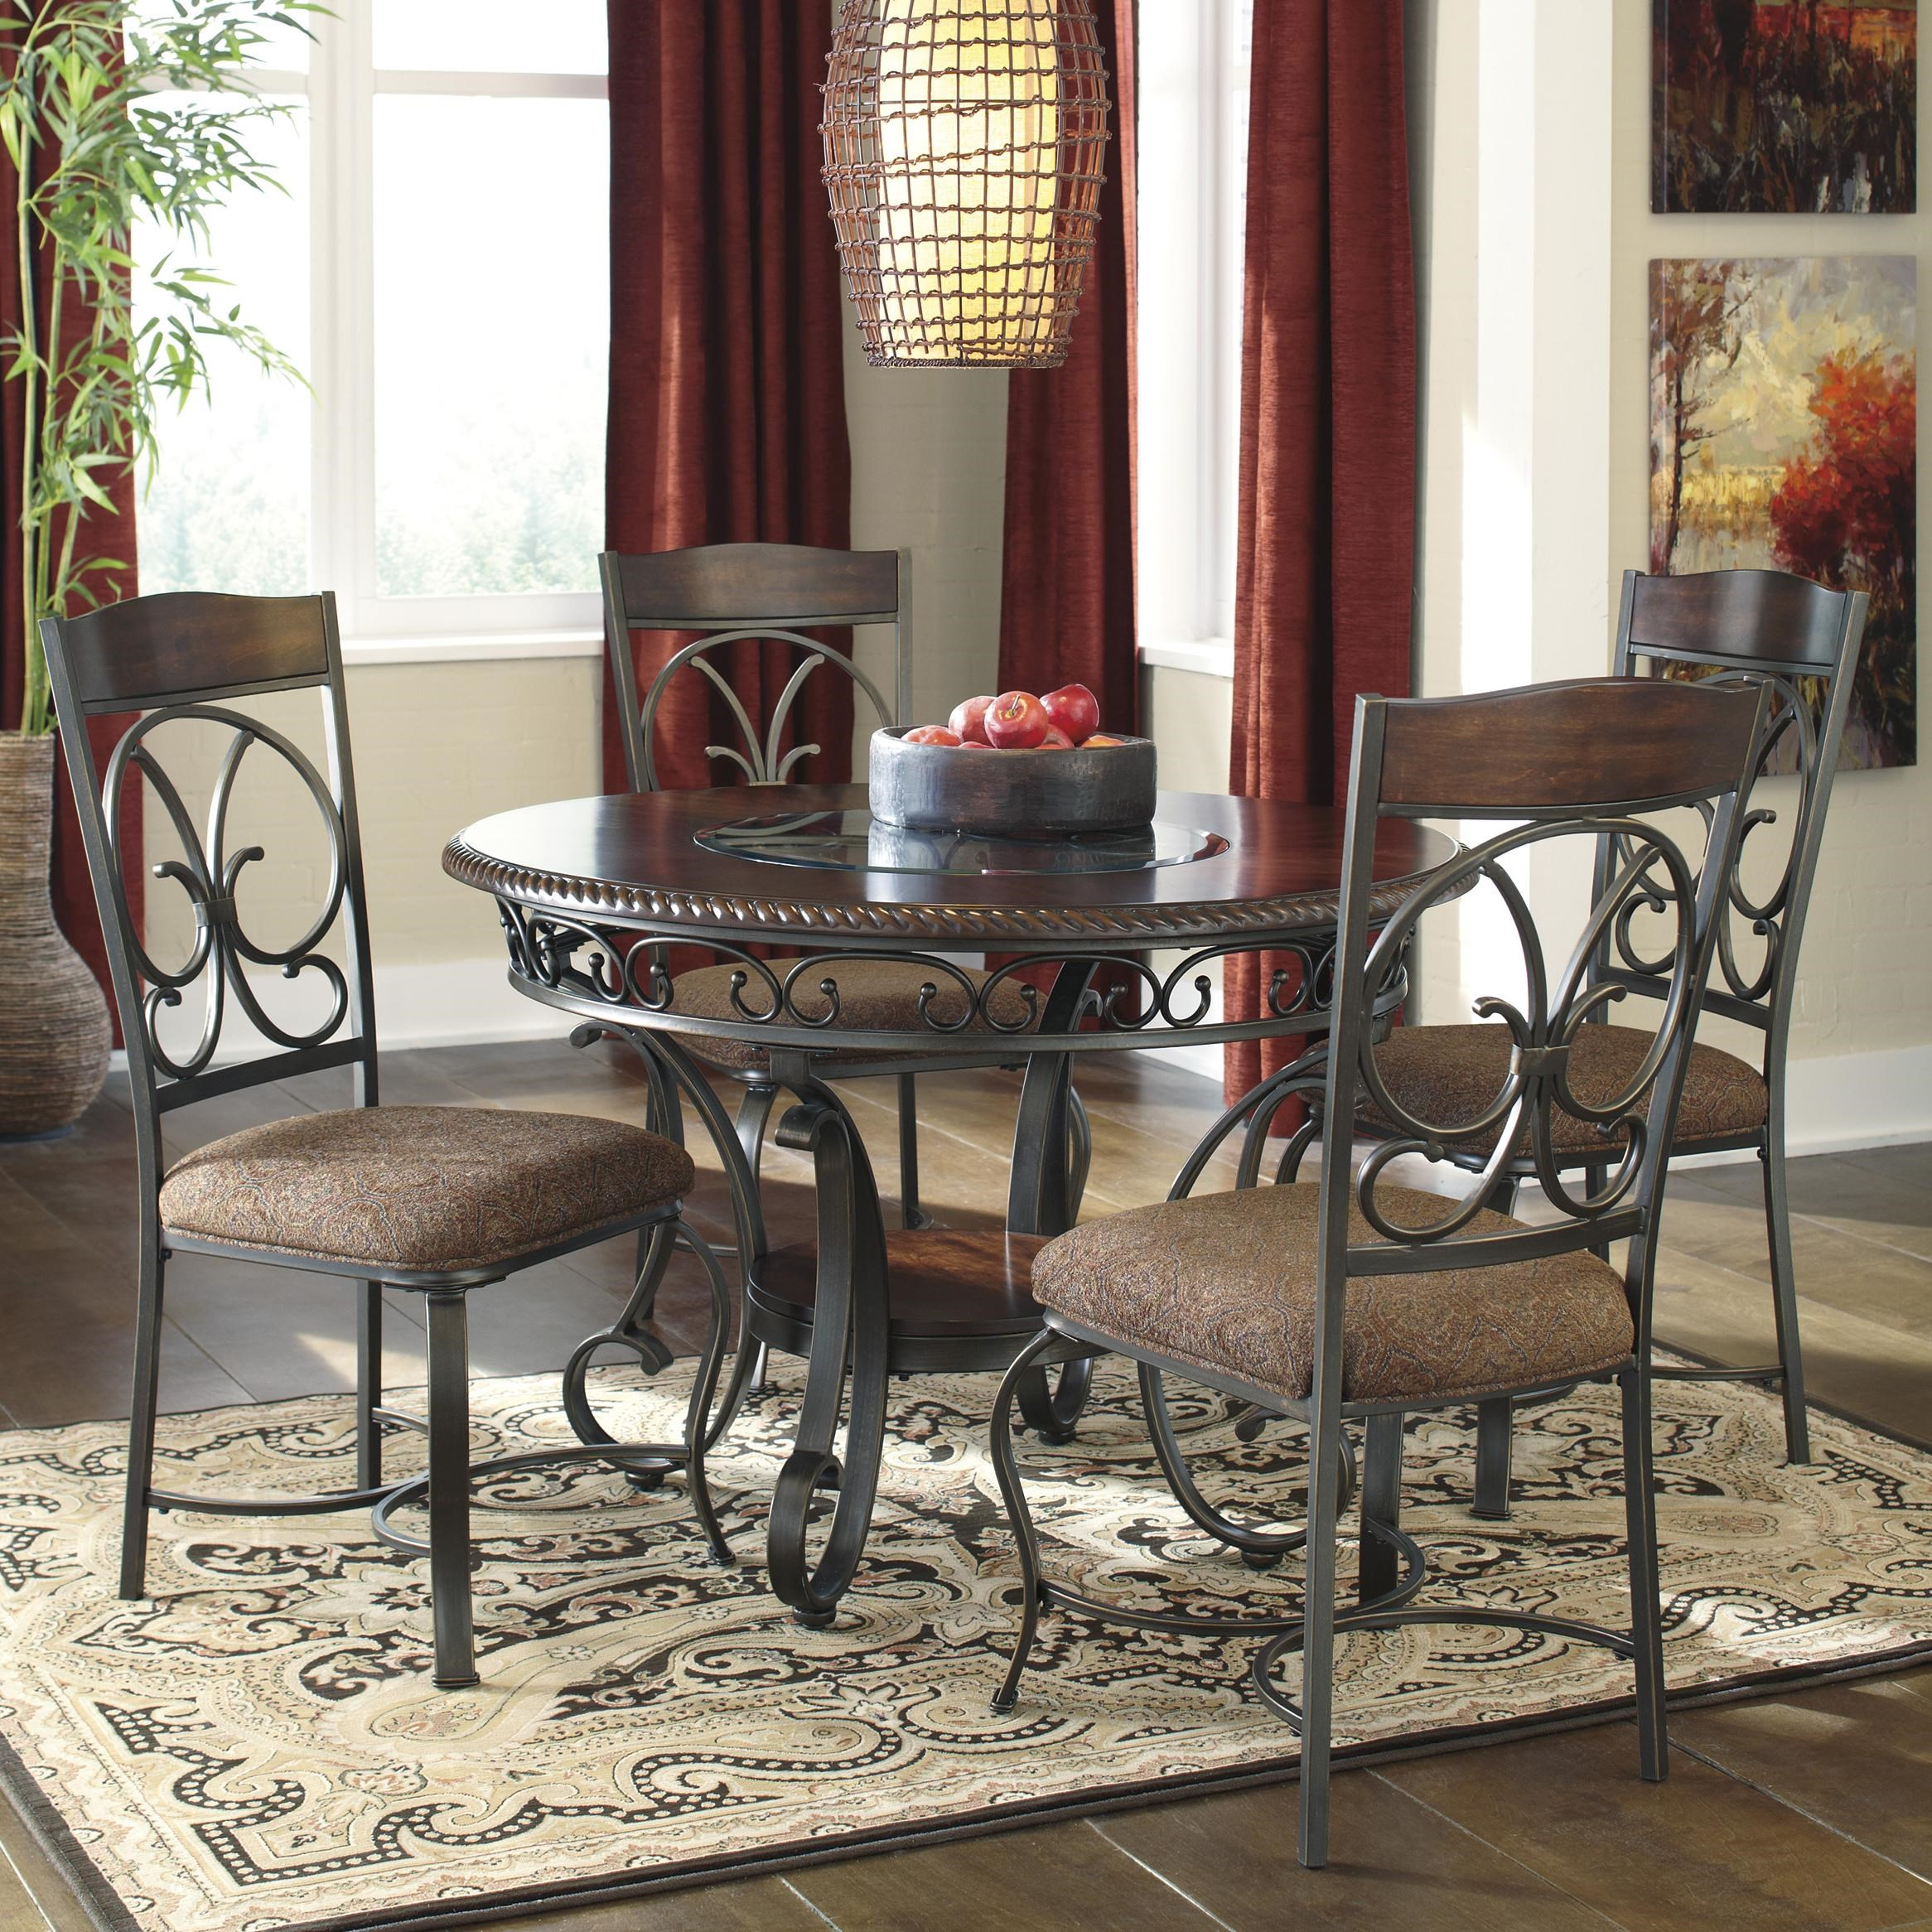 Signature Design by Ashley GlambreyRound Dining Table and Chair Set ...  sc 1 st  Royal Furniture & Signature Design by Ashley Glambrey Round Dining Table and 4 Chair ...